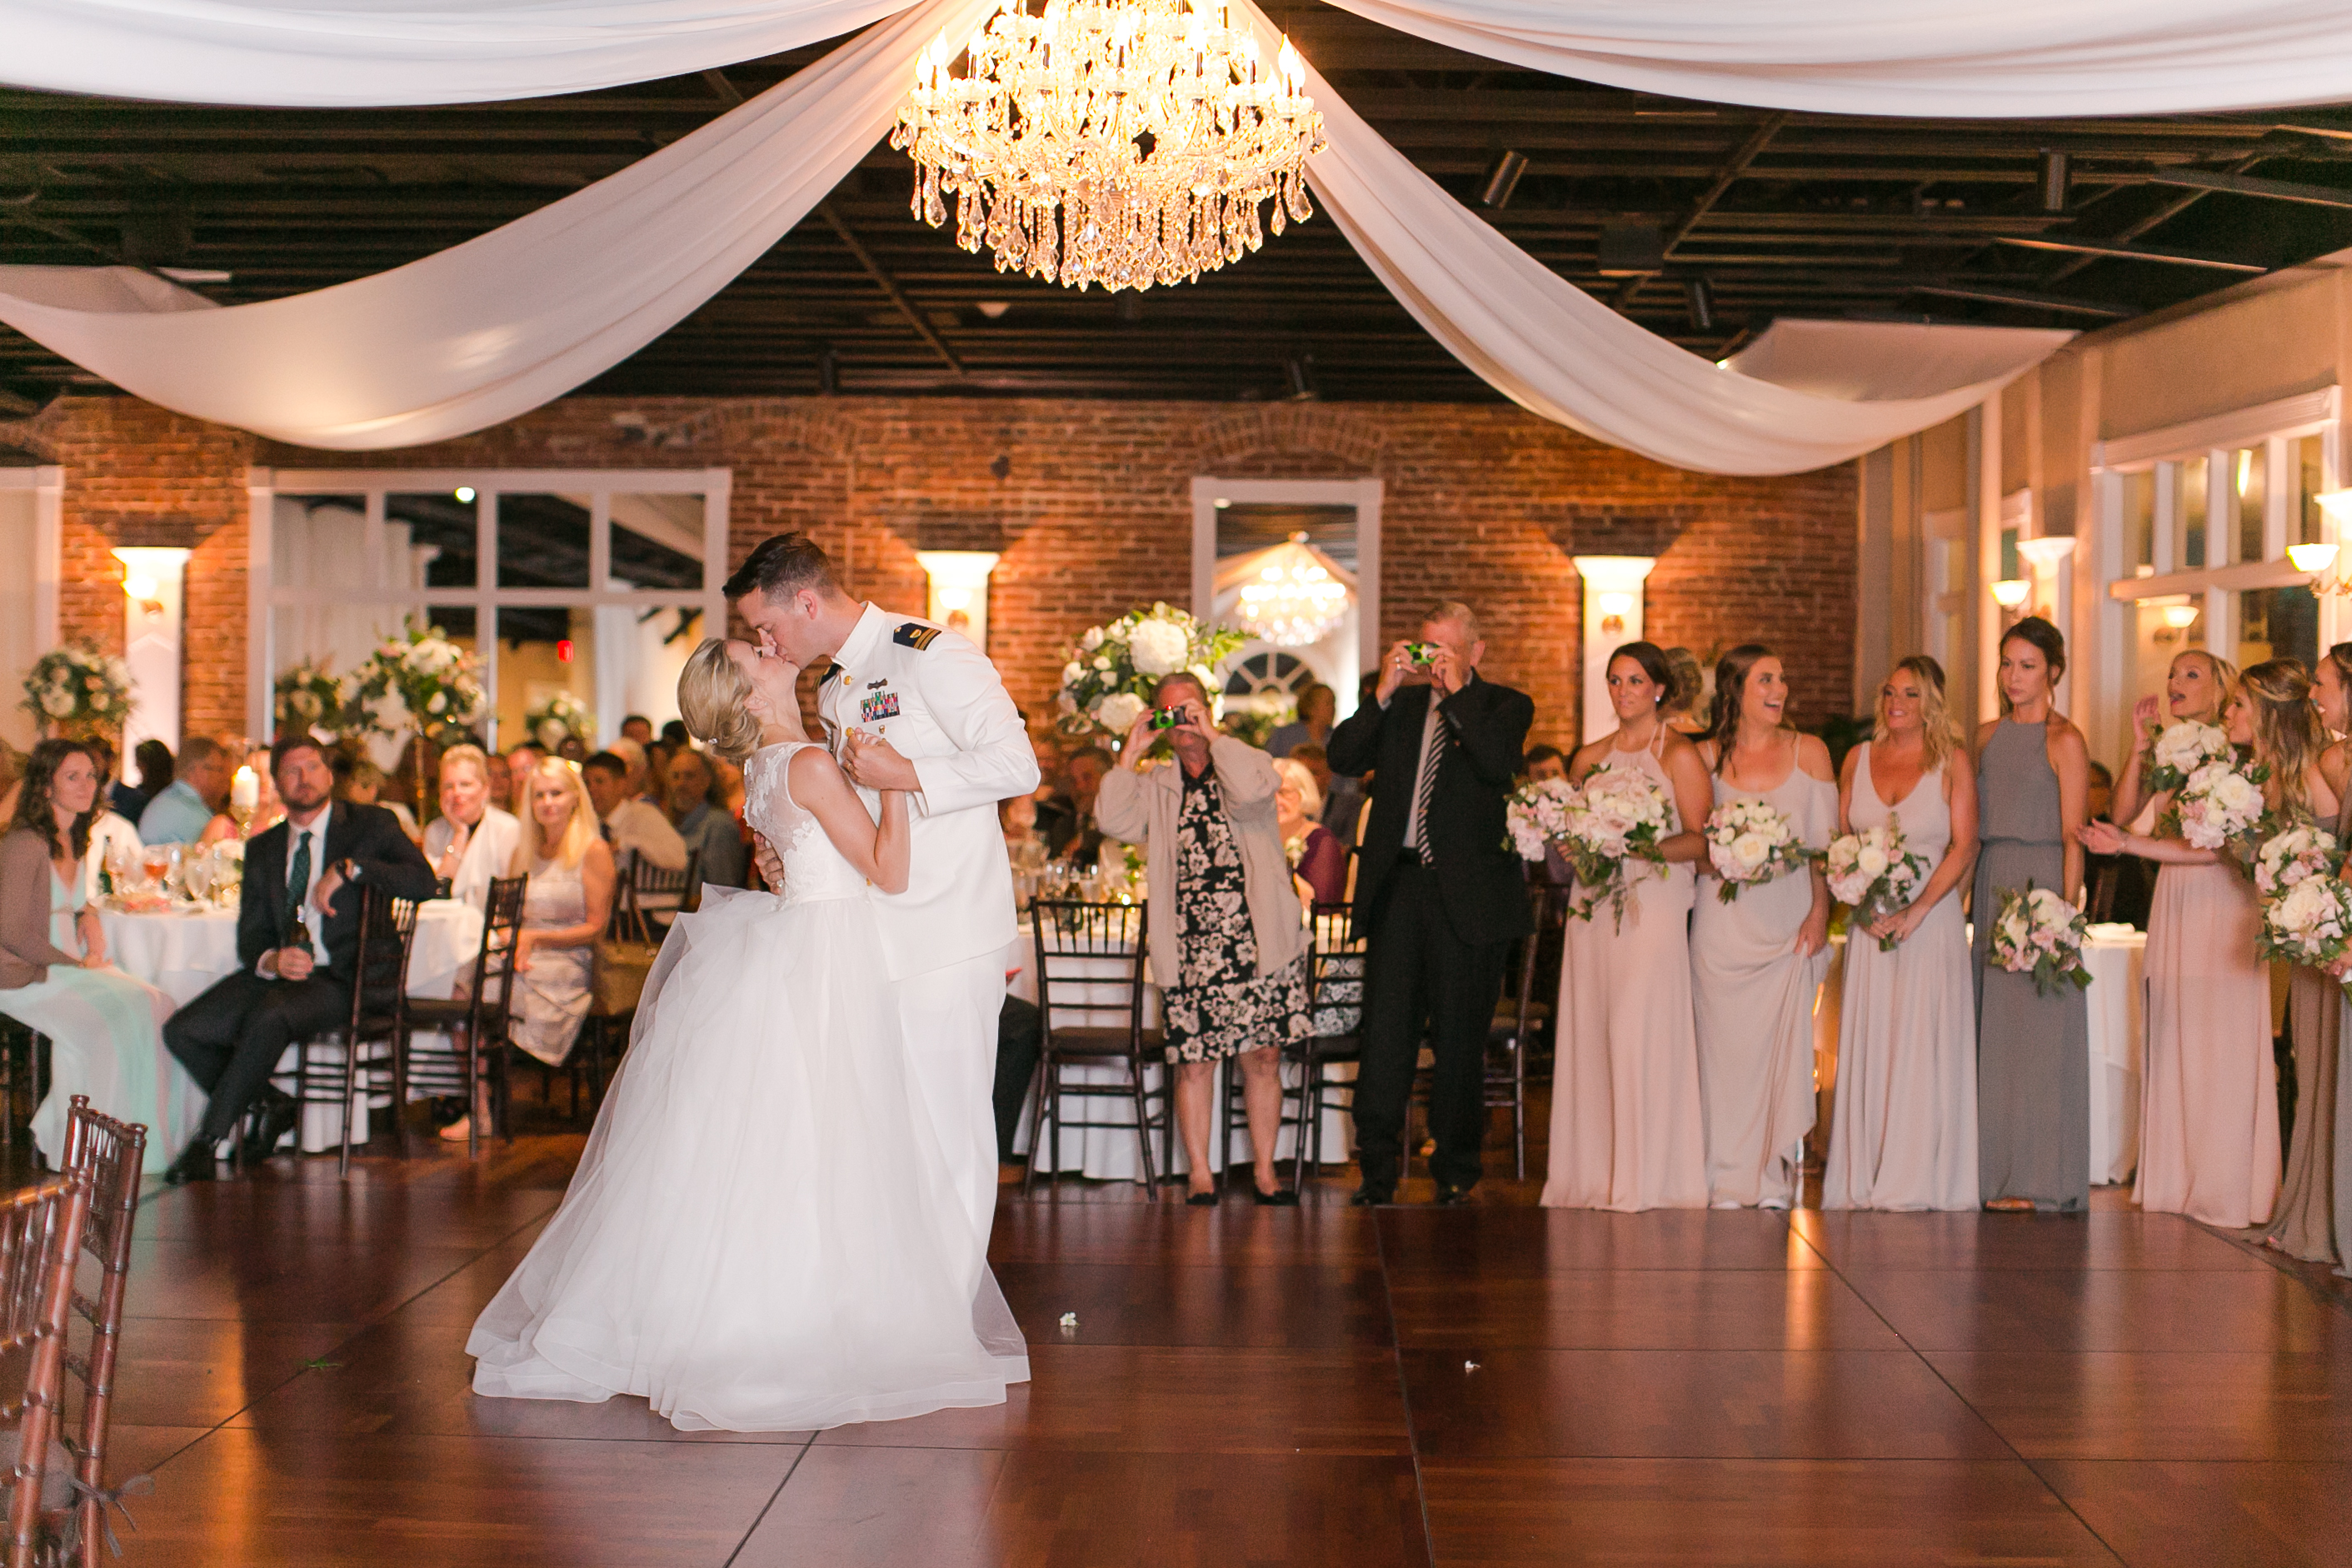 st-augustine-florida-wedding-ballroom-first-dance-bride-groom